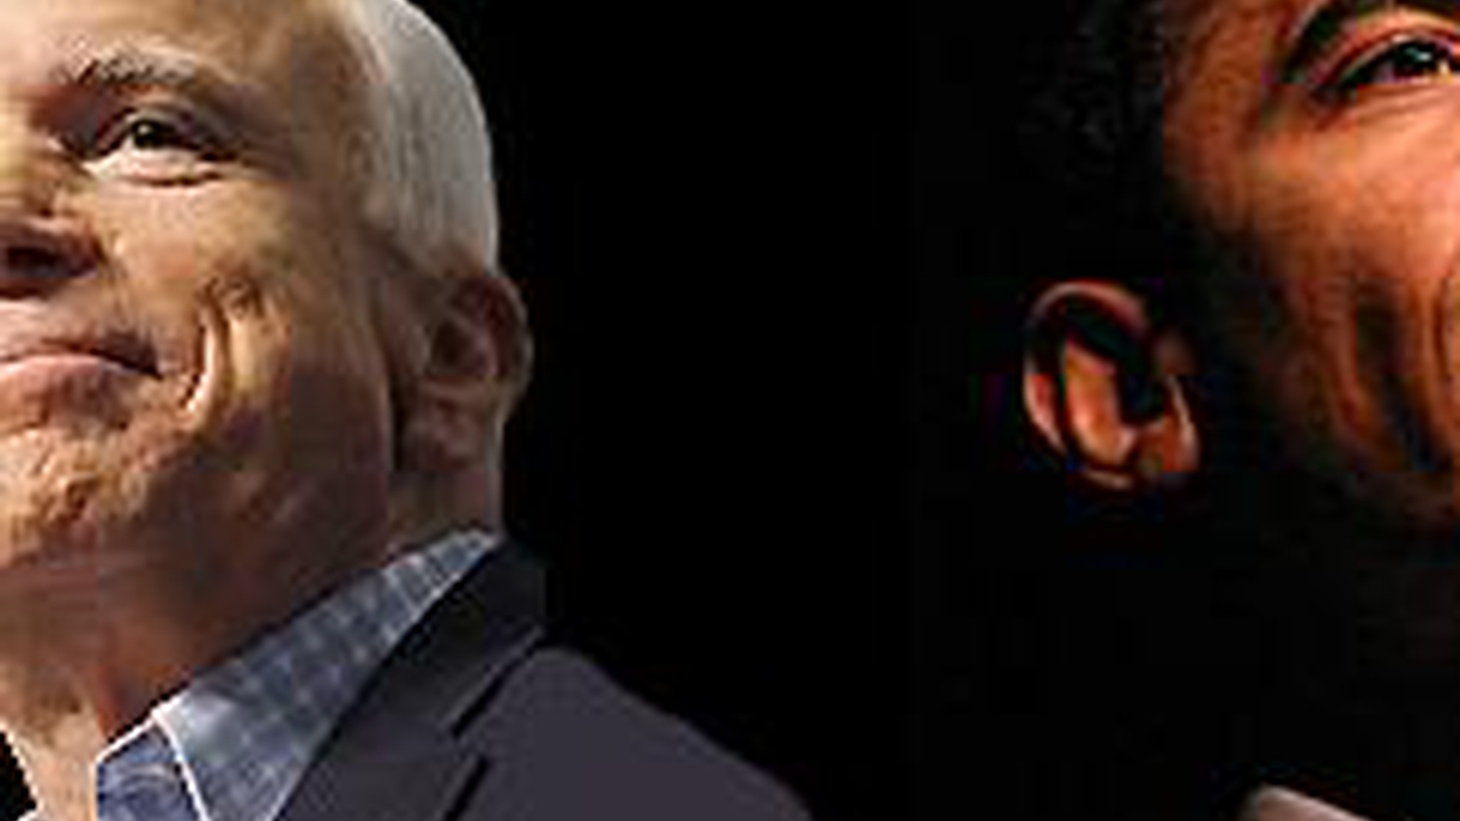 The latest polls show Obama increasing his lead over McCain